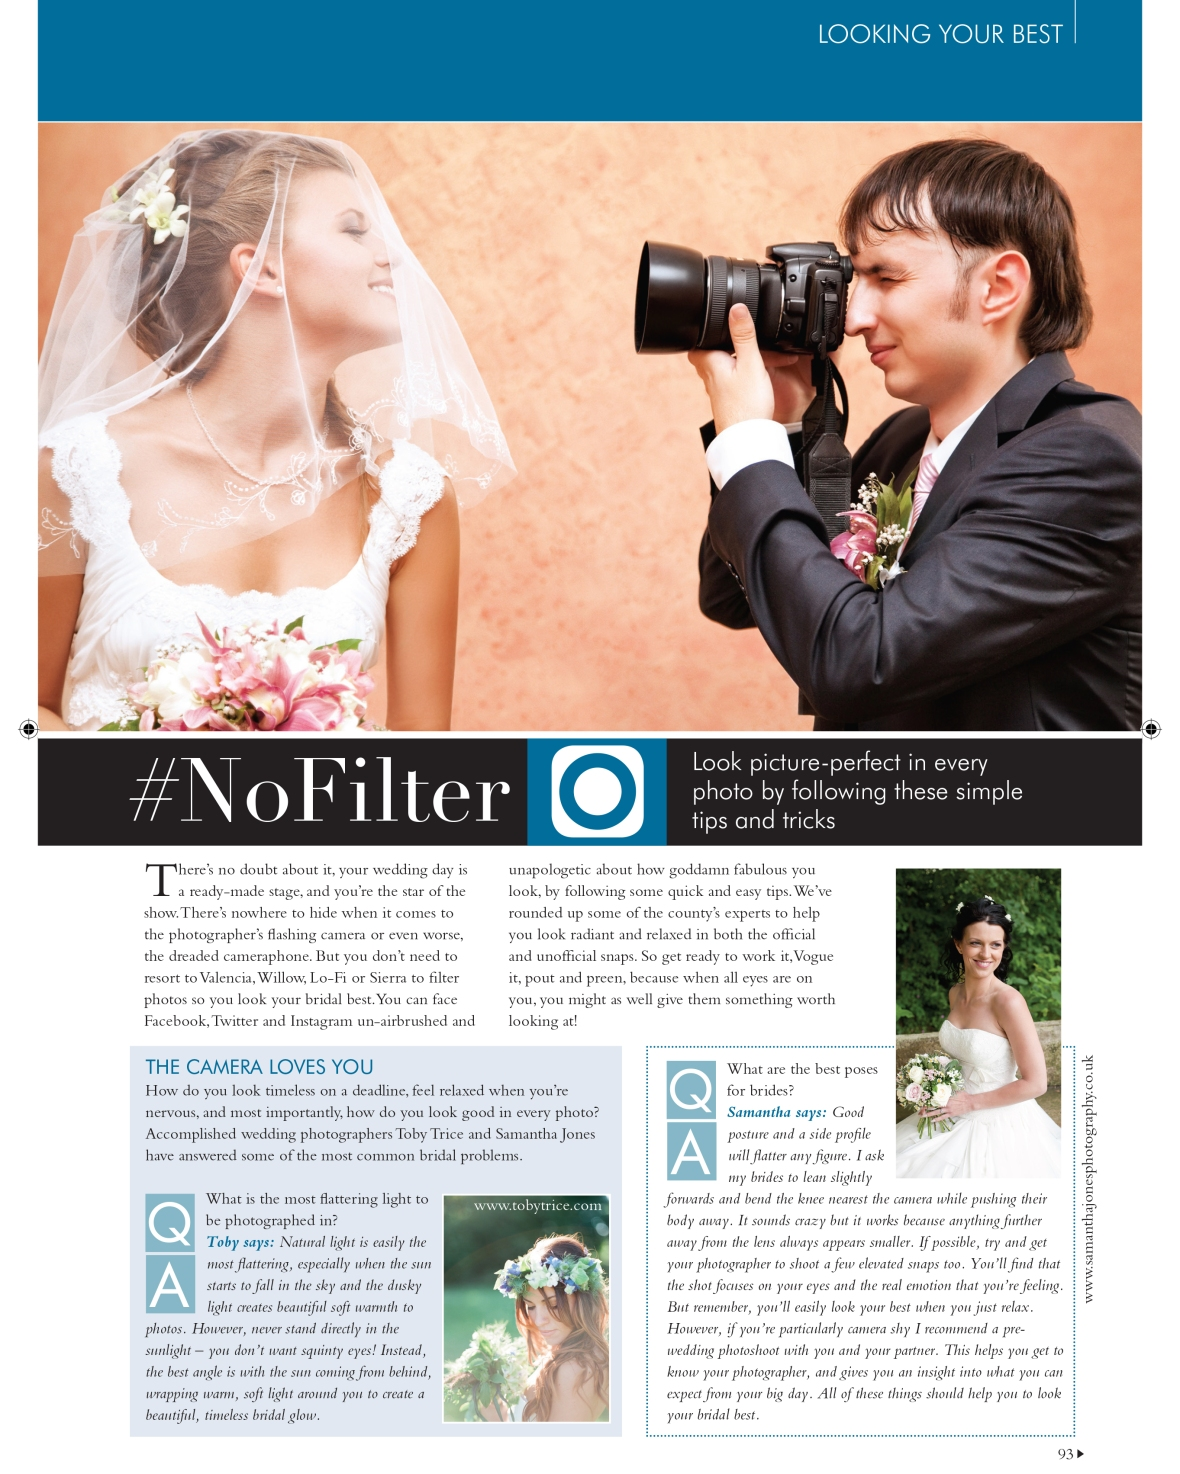 Your Kent Wedding article on looking your best 2